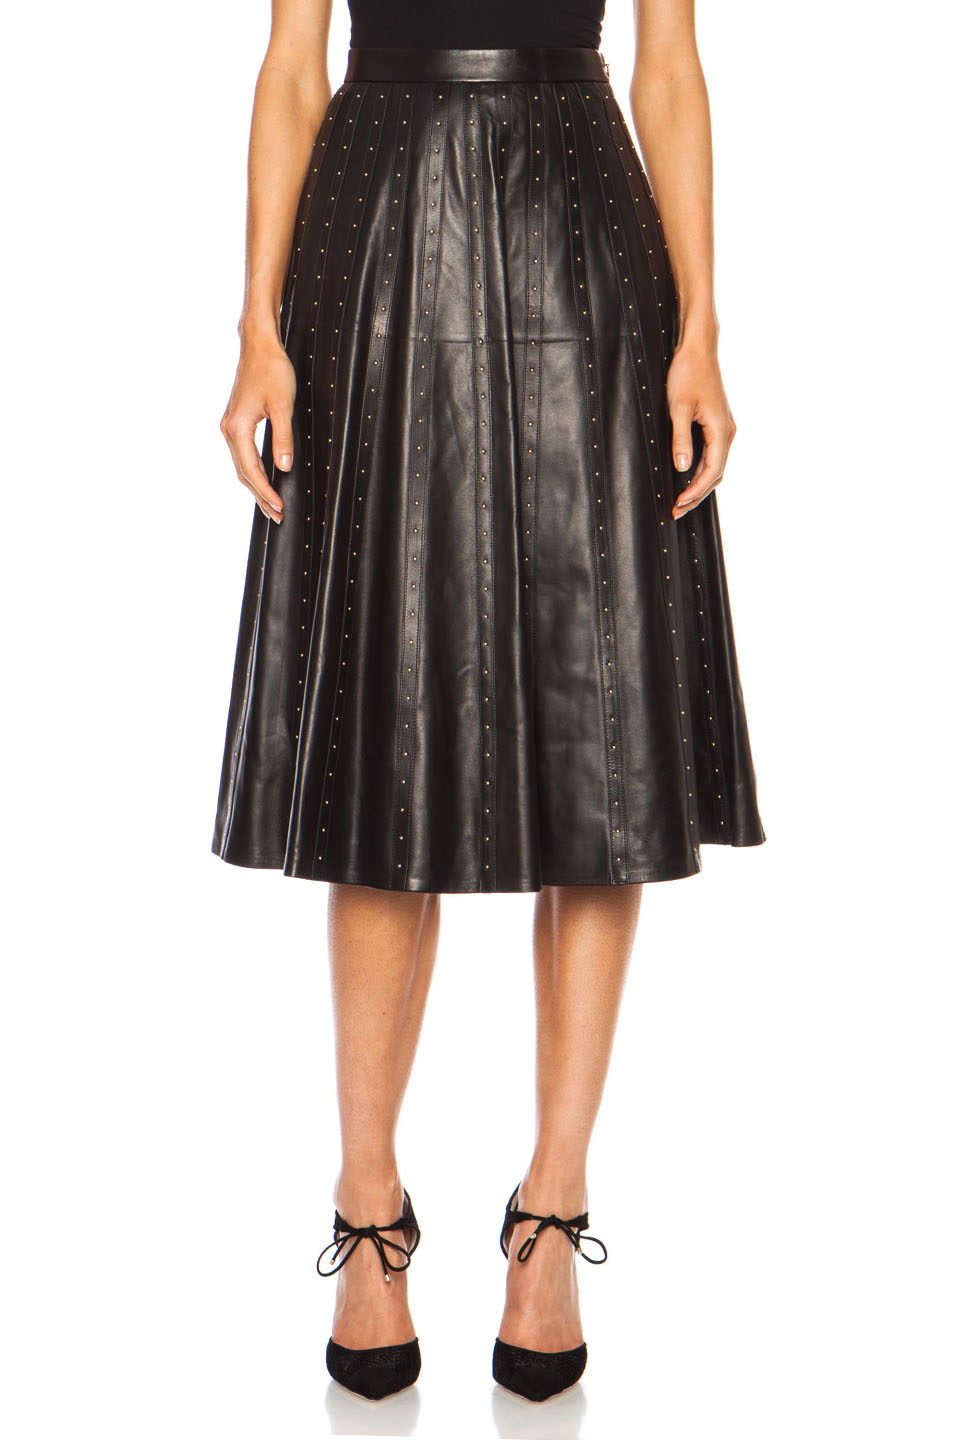 Faux Leather Slit Pencil Skirt A faux leather pencil skirt featuring a concealed QUICK VIEW Pleated A-Line Maxi Skirt We may retain your information for as long as your account is active or as needed to provide you services, comply with our legal obligations, resolve disputes and enforce our agreements.